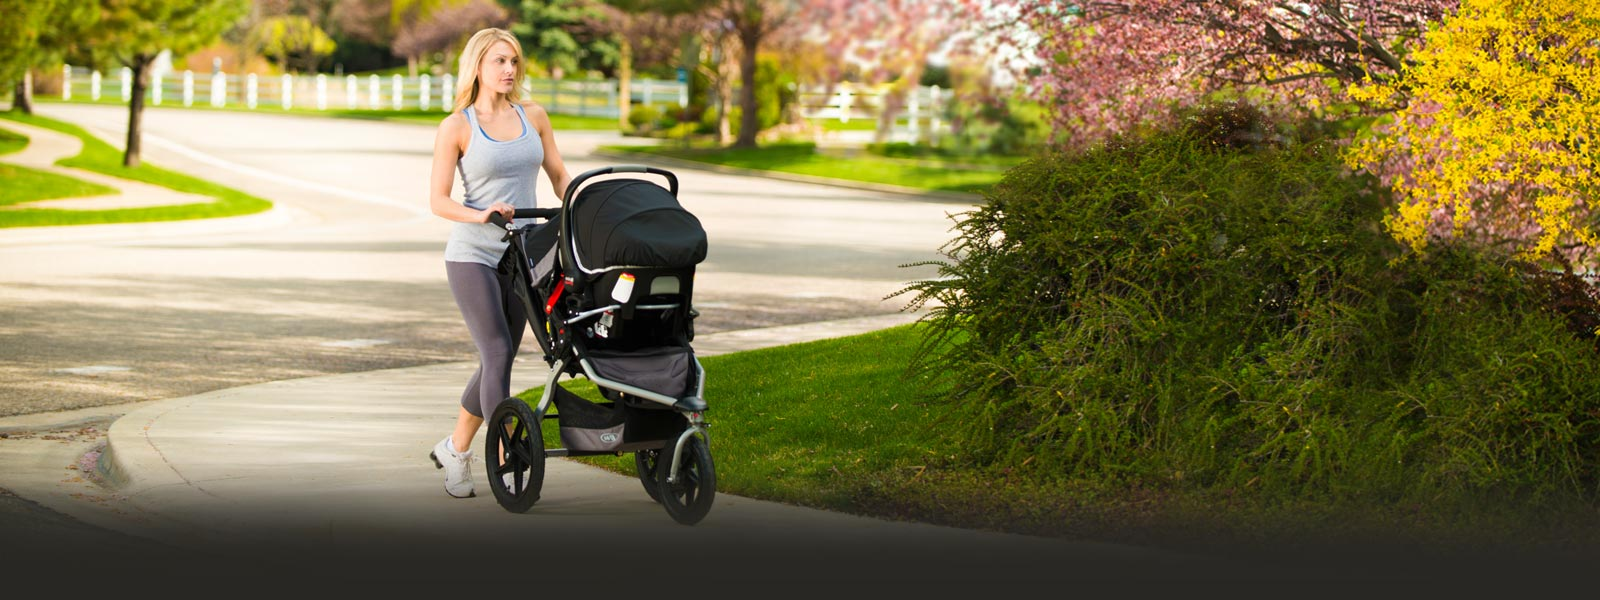 Baby Buggy Mieten Schoggy Baby Service